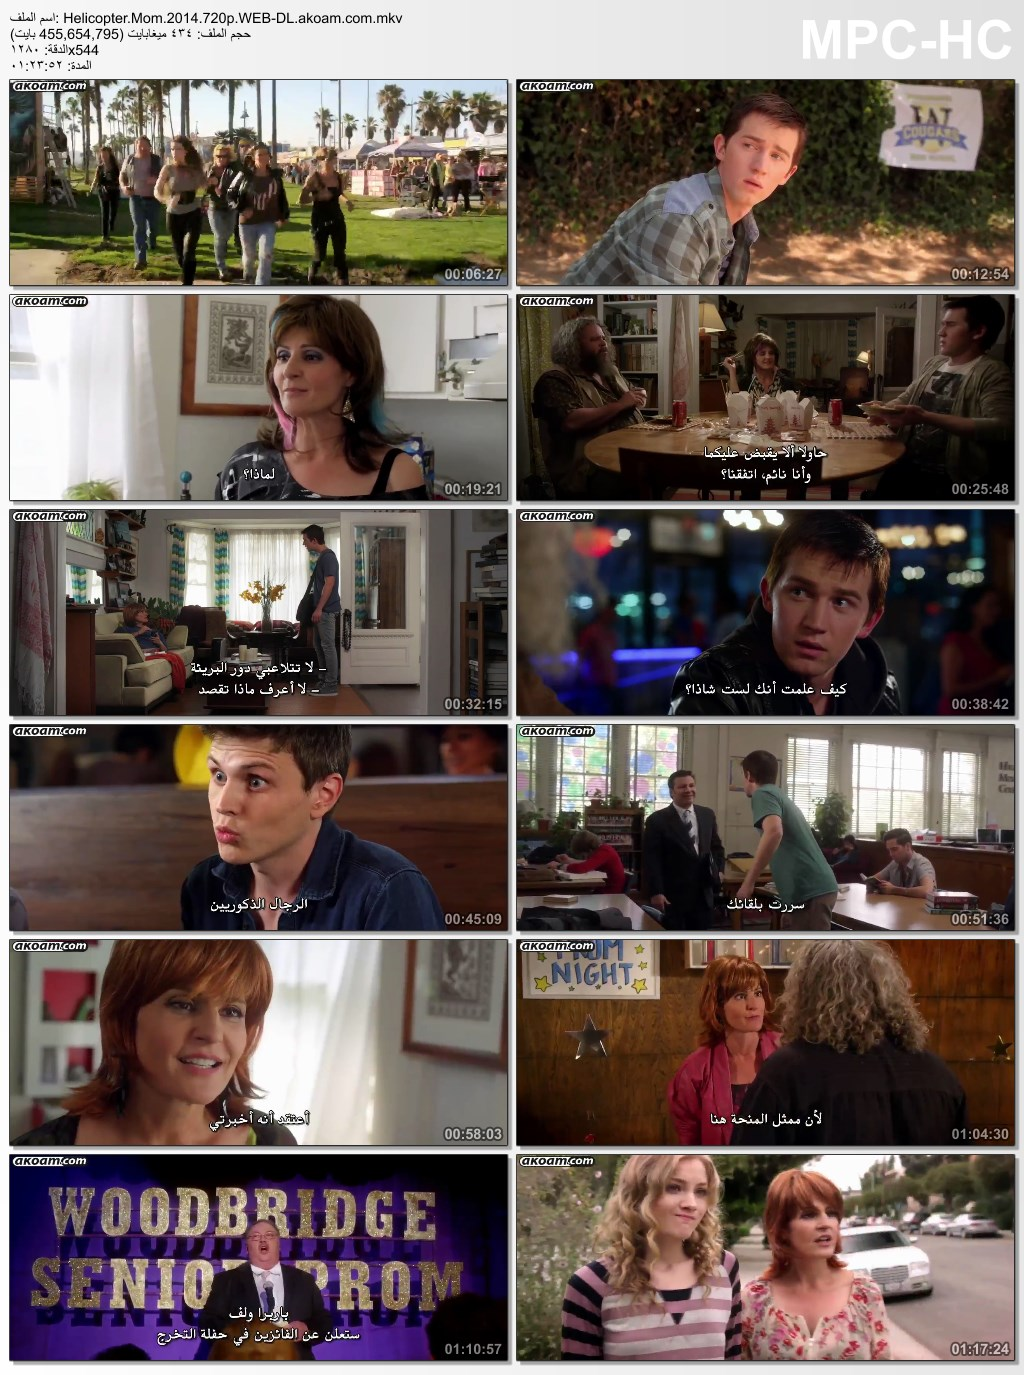 Helicopter Mom 2014,Helicopter,Mom,Helicopter Mom,الويب ديل,الكوميديا,الدراما,Nia Vardalos,Jason Dolley,Mark Boone Junior